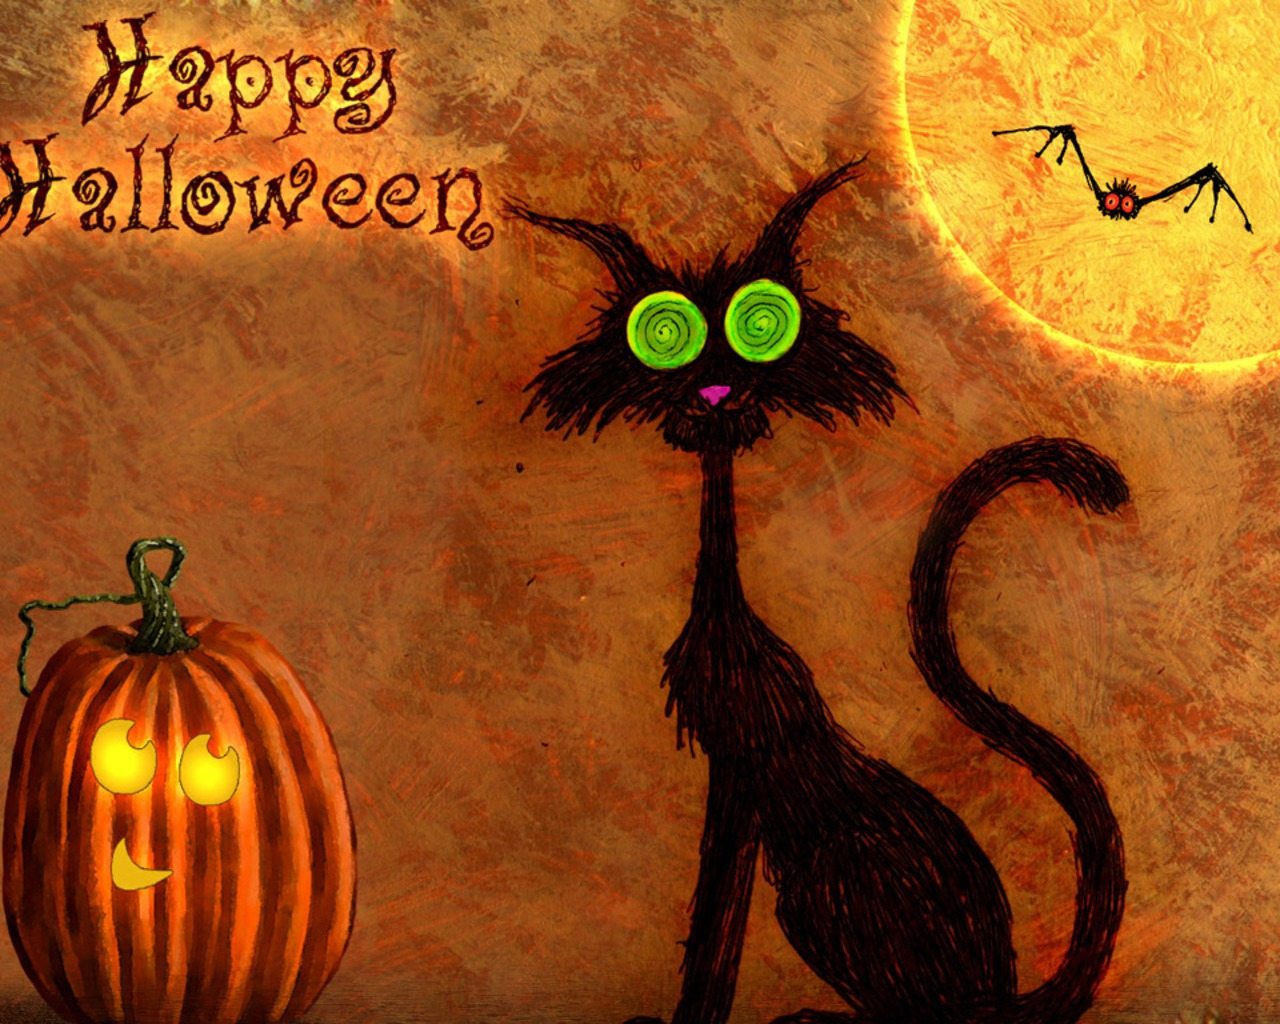 http://3.bp.blogspot.com/-4S1WE-xpxxg/TqETtPeLu9I/AAAAAAAABKU/LzqJBMfgNA4/s1600/wallpapers-happy-halloween-2011.jpg